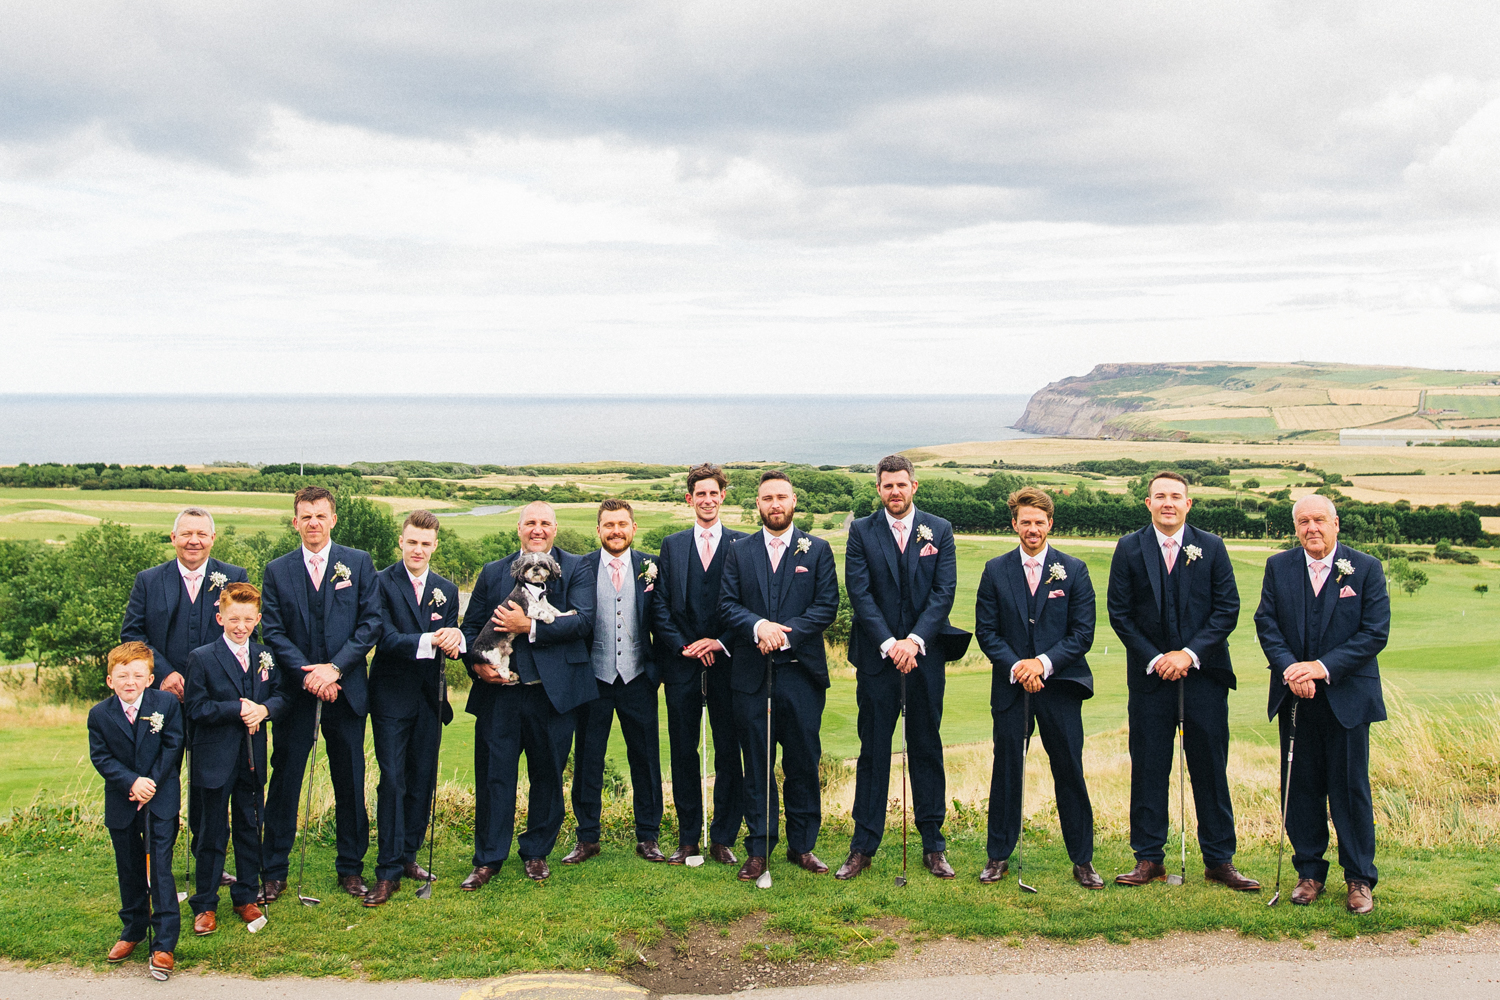 north-yorkshire-saltburn-wedding-photographer-0041.jpg